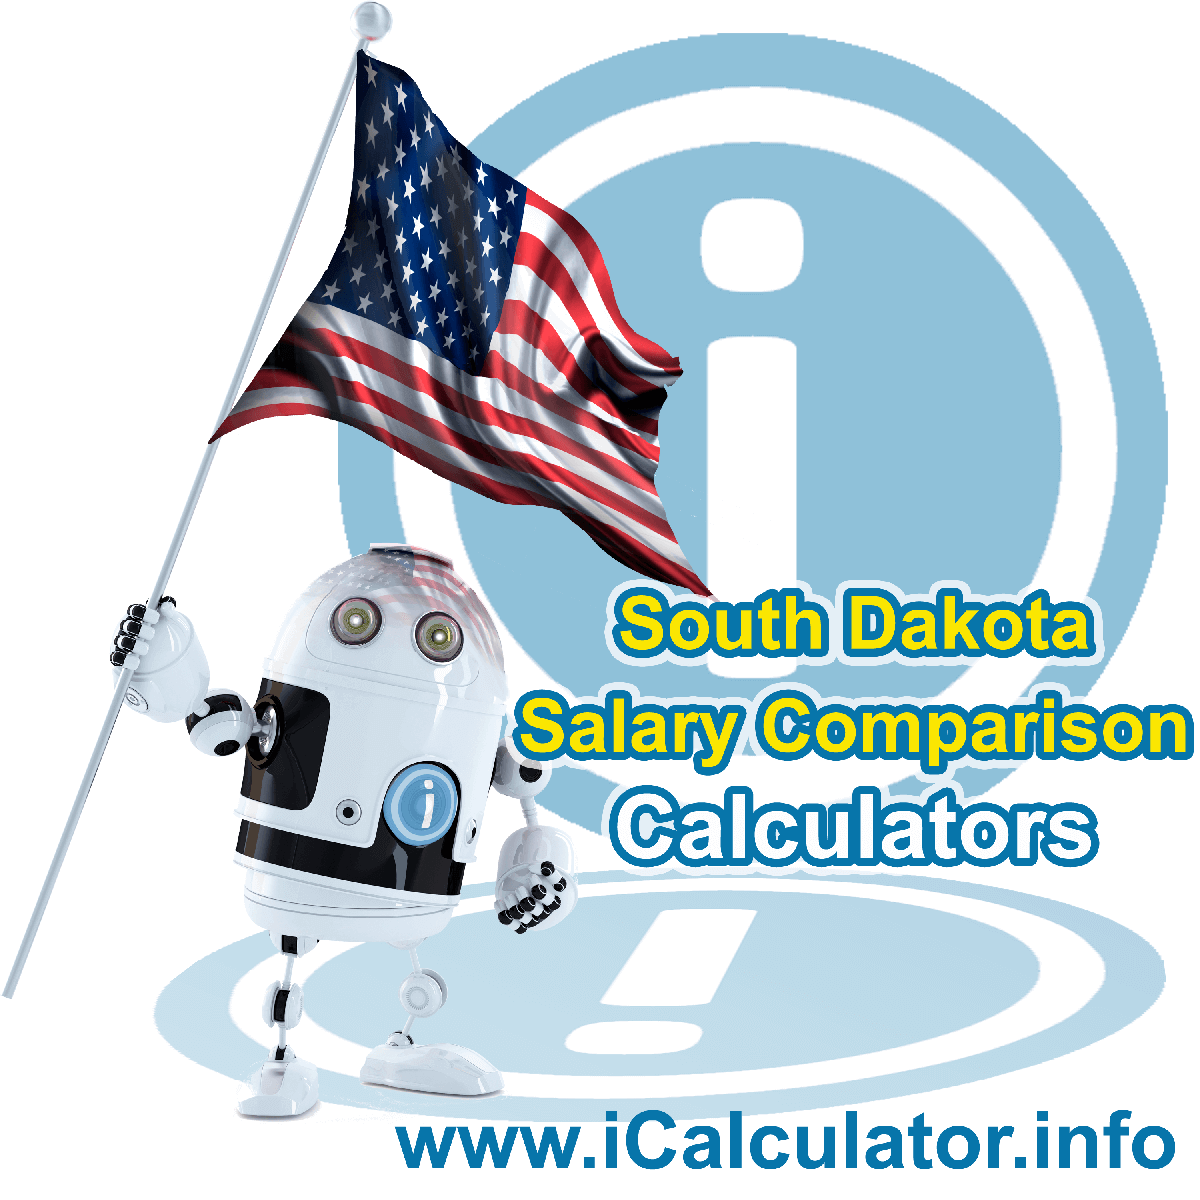 South Dakota Salary Comparison Calculator 2021 | iCalculator™ | The South Dakota Salary Comparison Calculator allows you to quickly calculate and compare upto 6 salaries in South Dakota or between other states for the 2021 tax year and historical tax years. Its an excellent tool for jobseekers, pay raise comparison and comparison of salaries between different US States